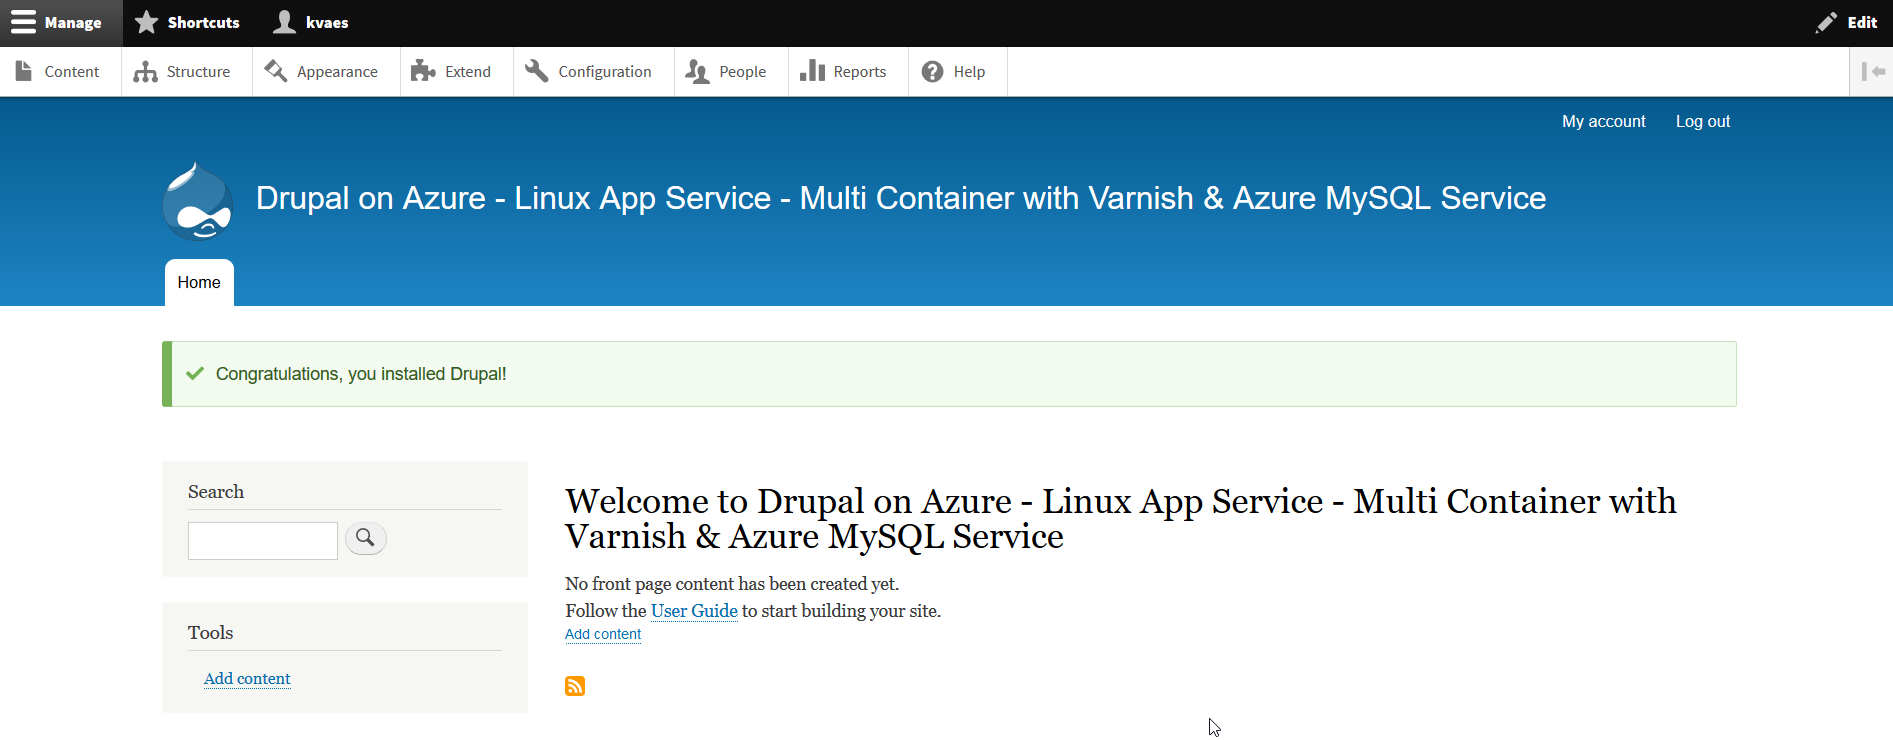 2018-05-31 23_11_30-Welcome to Drupal on Azure – Linux App Service